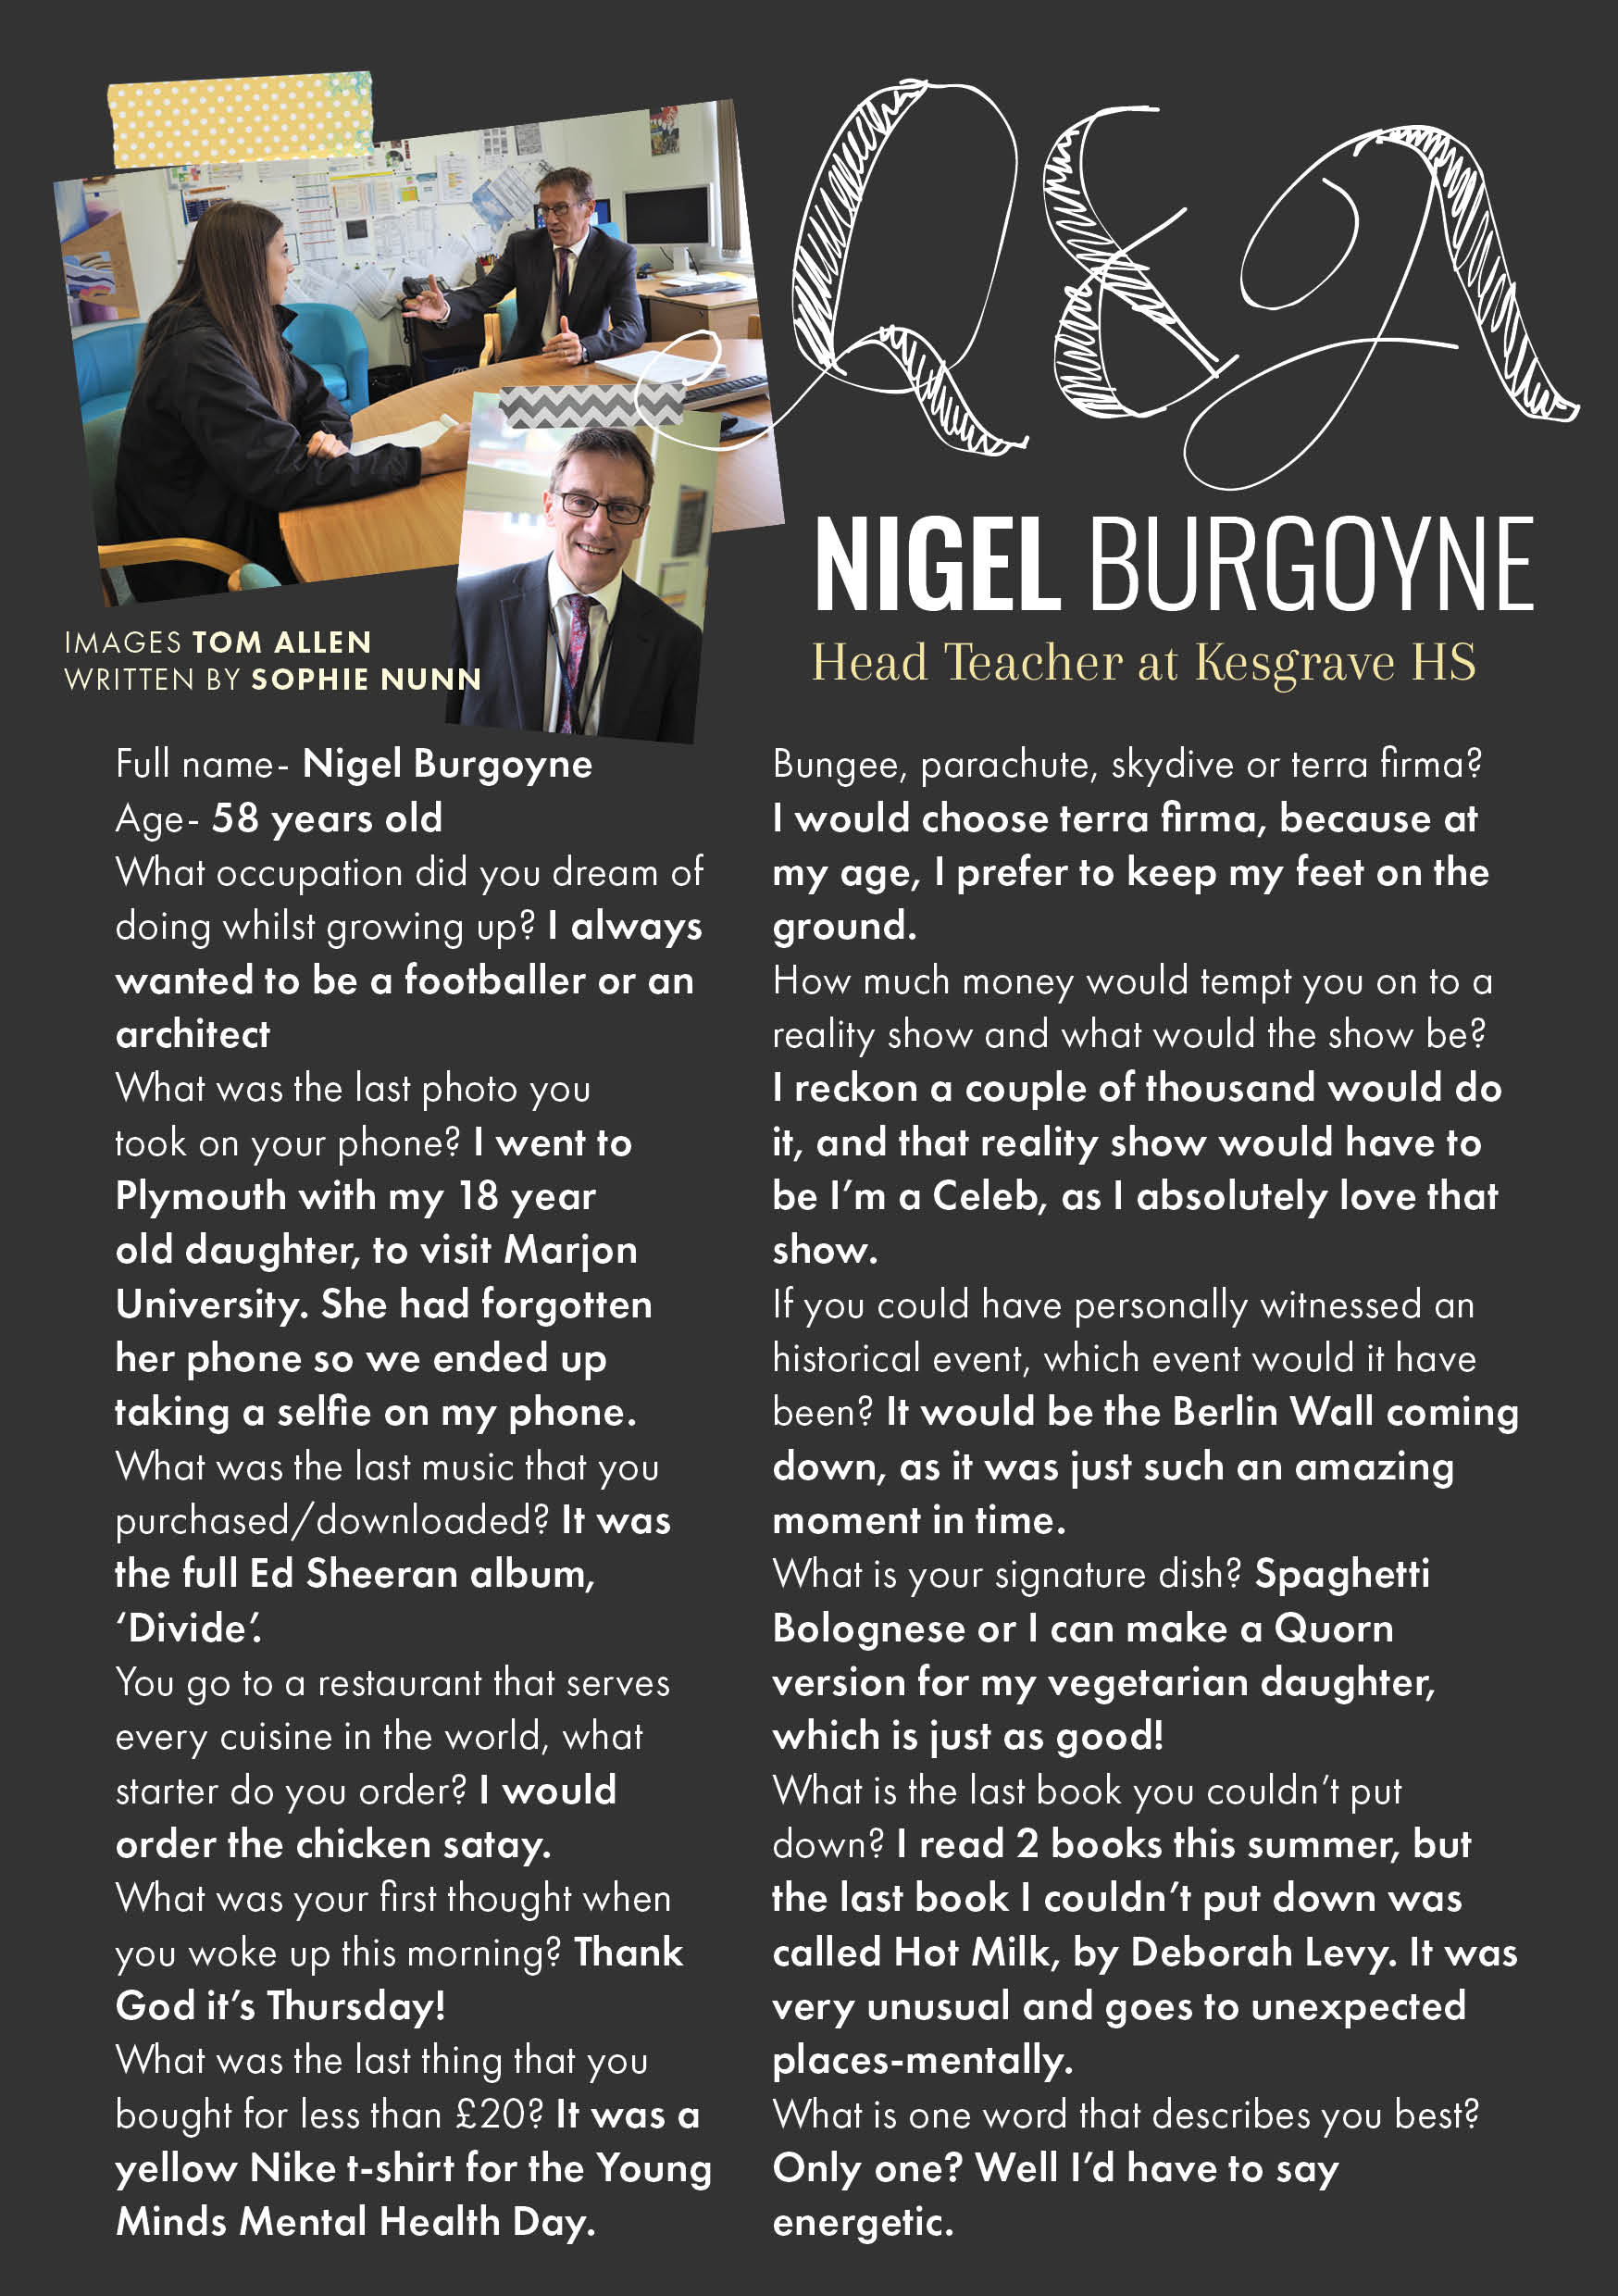 q&a, nigel burgoyne, kesgrave high school, ipswich, suffolk, head teacher